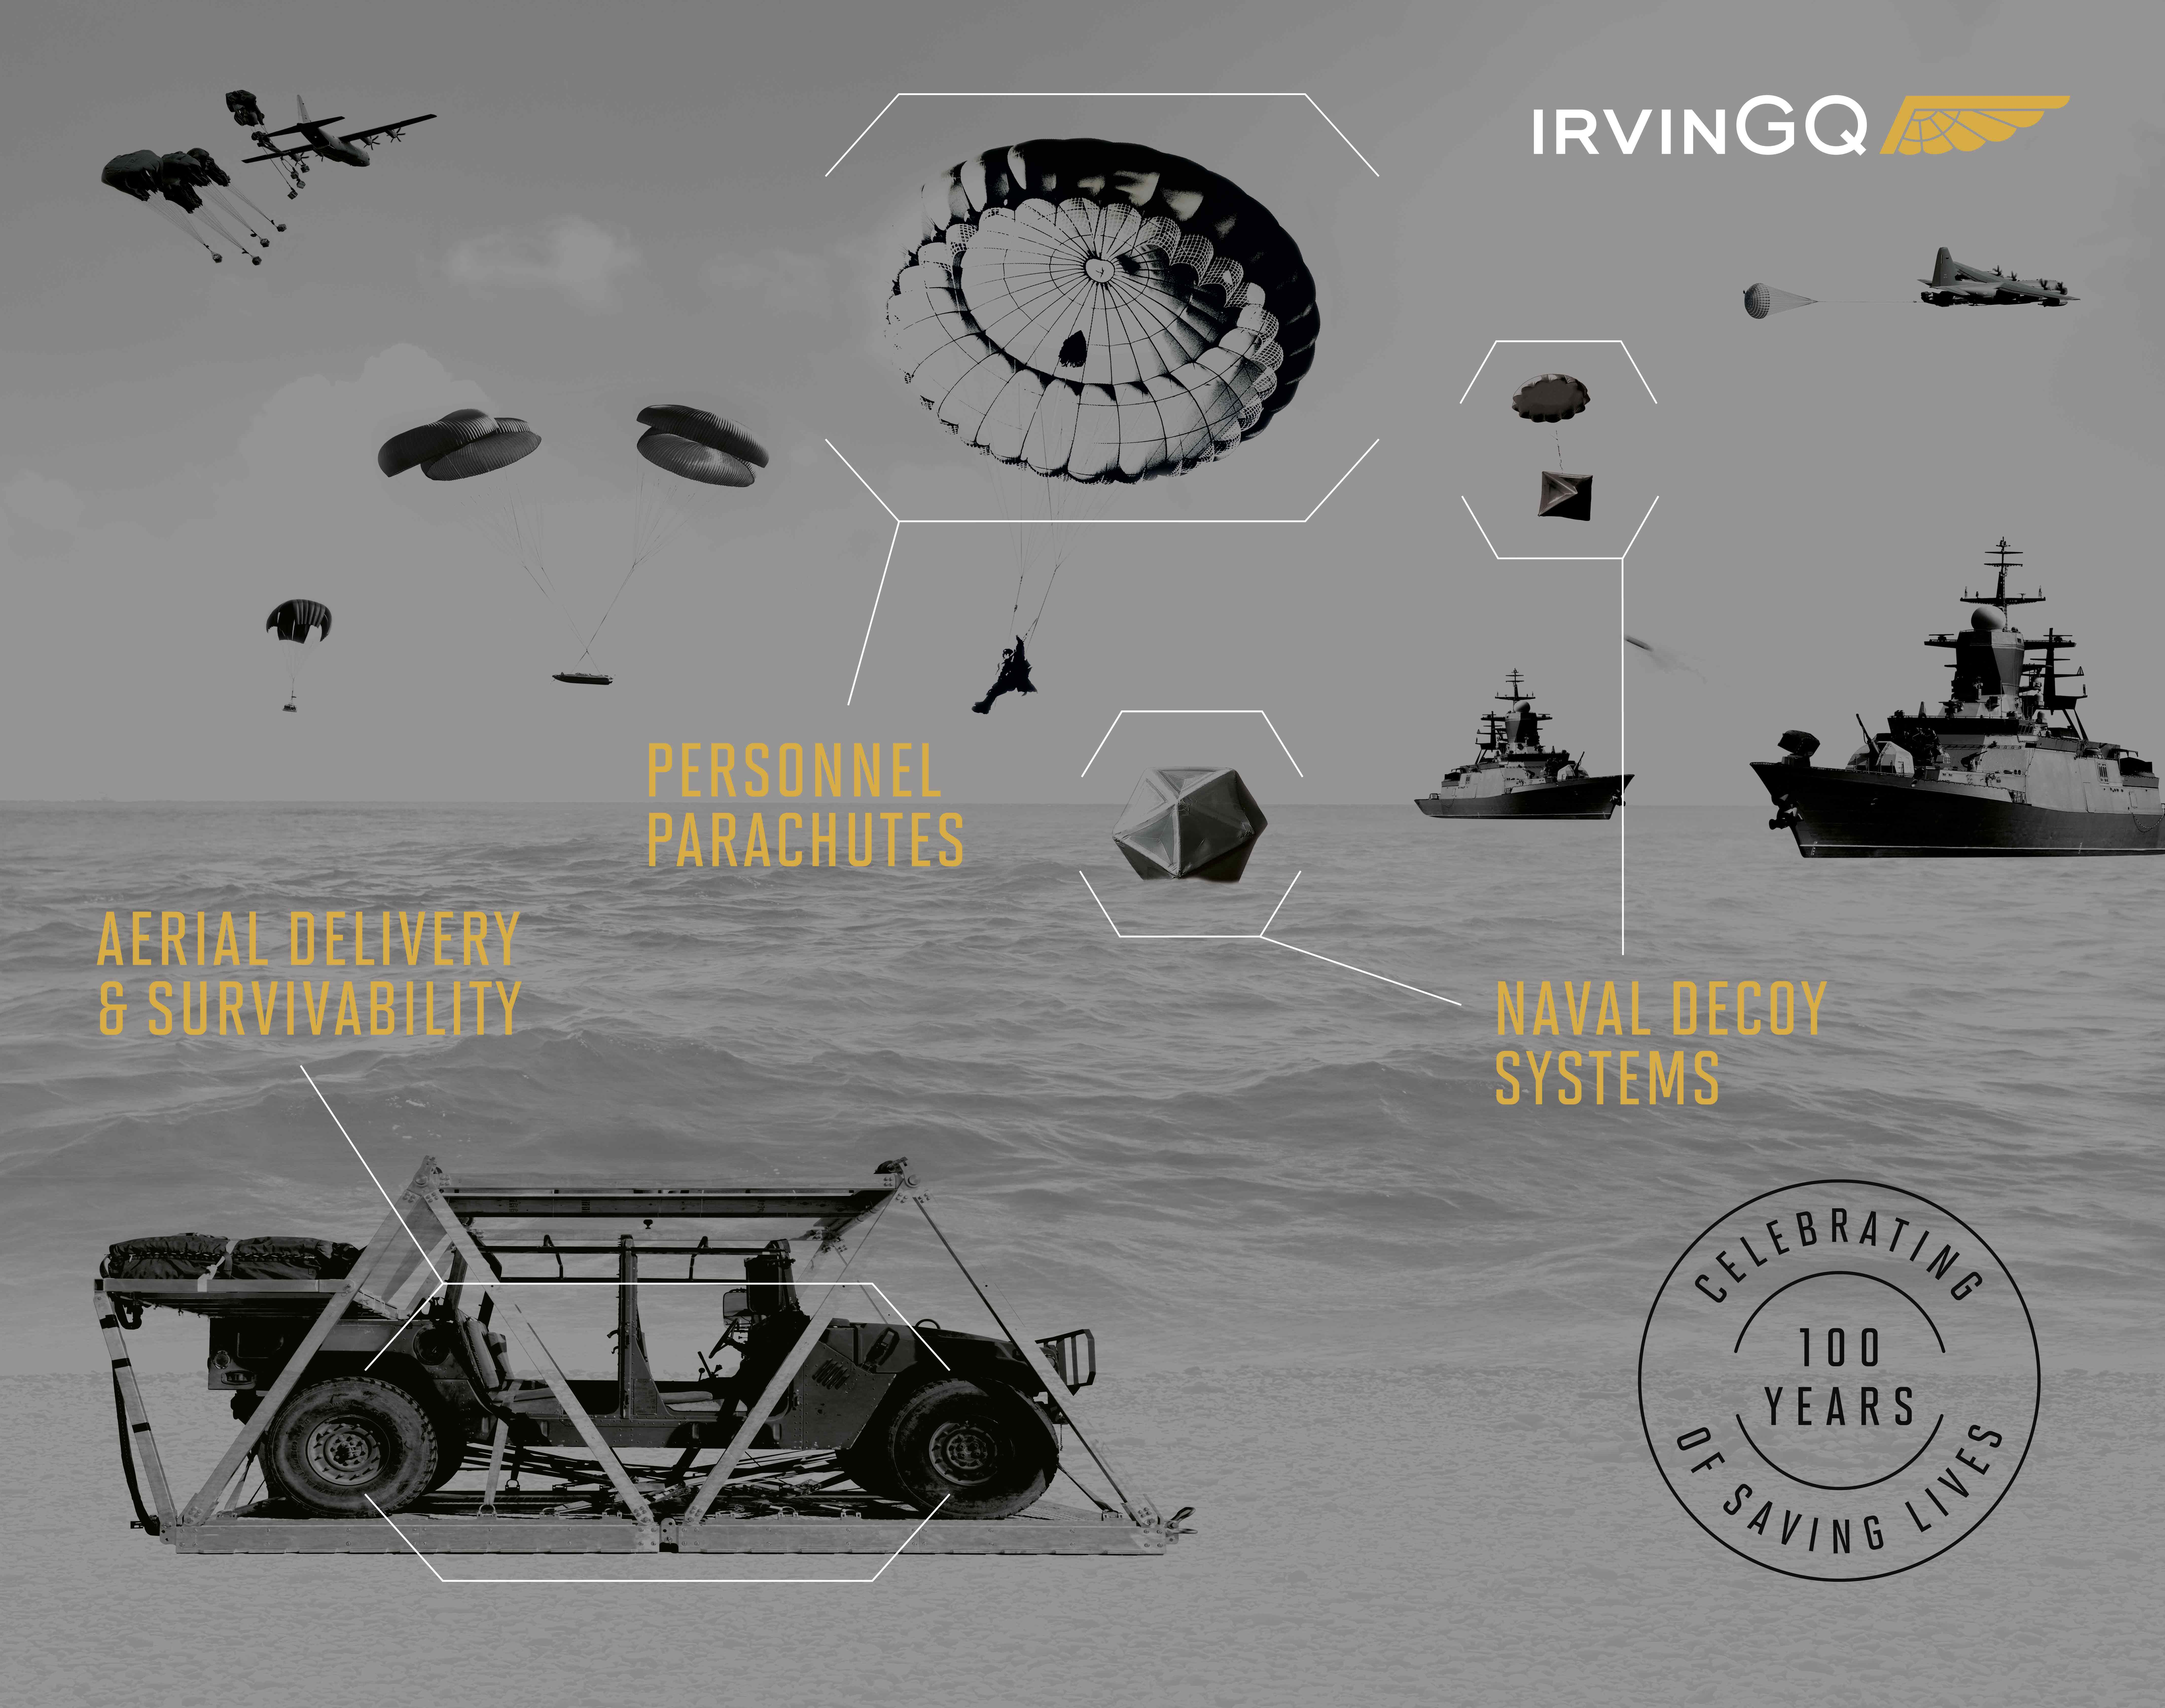 IrvinGQ products